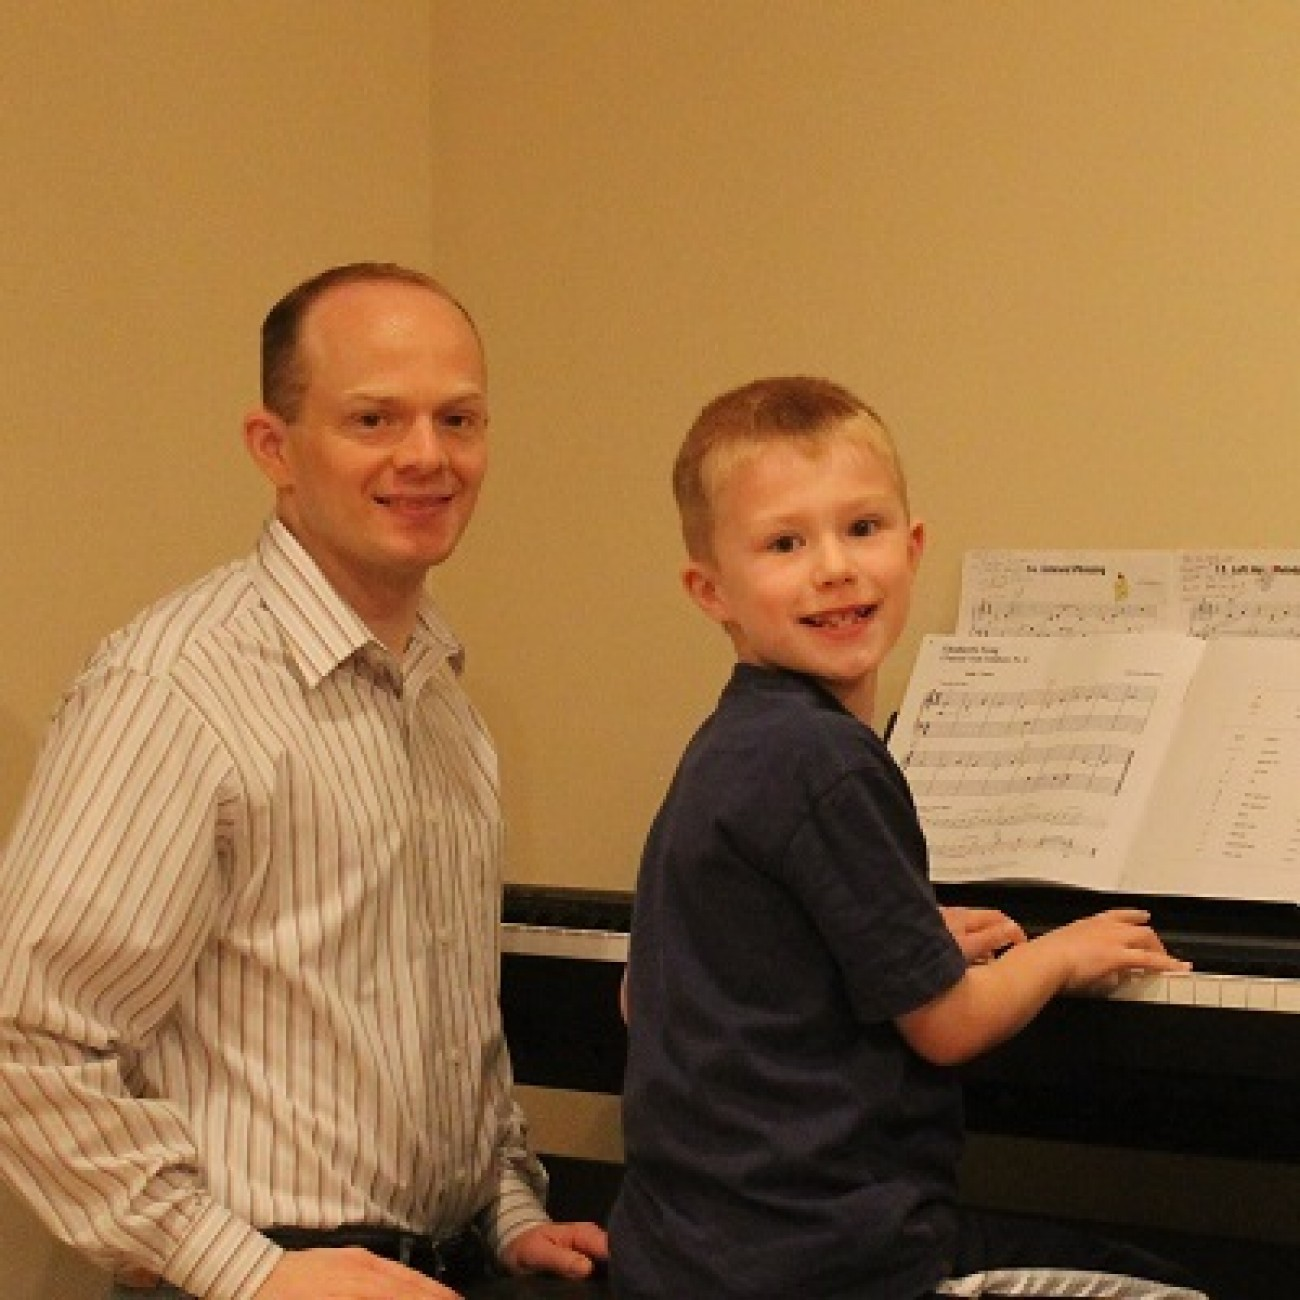 ab-finfam-Chase-and-dad-on-piano-2014-04-081-1300x1300